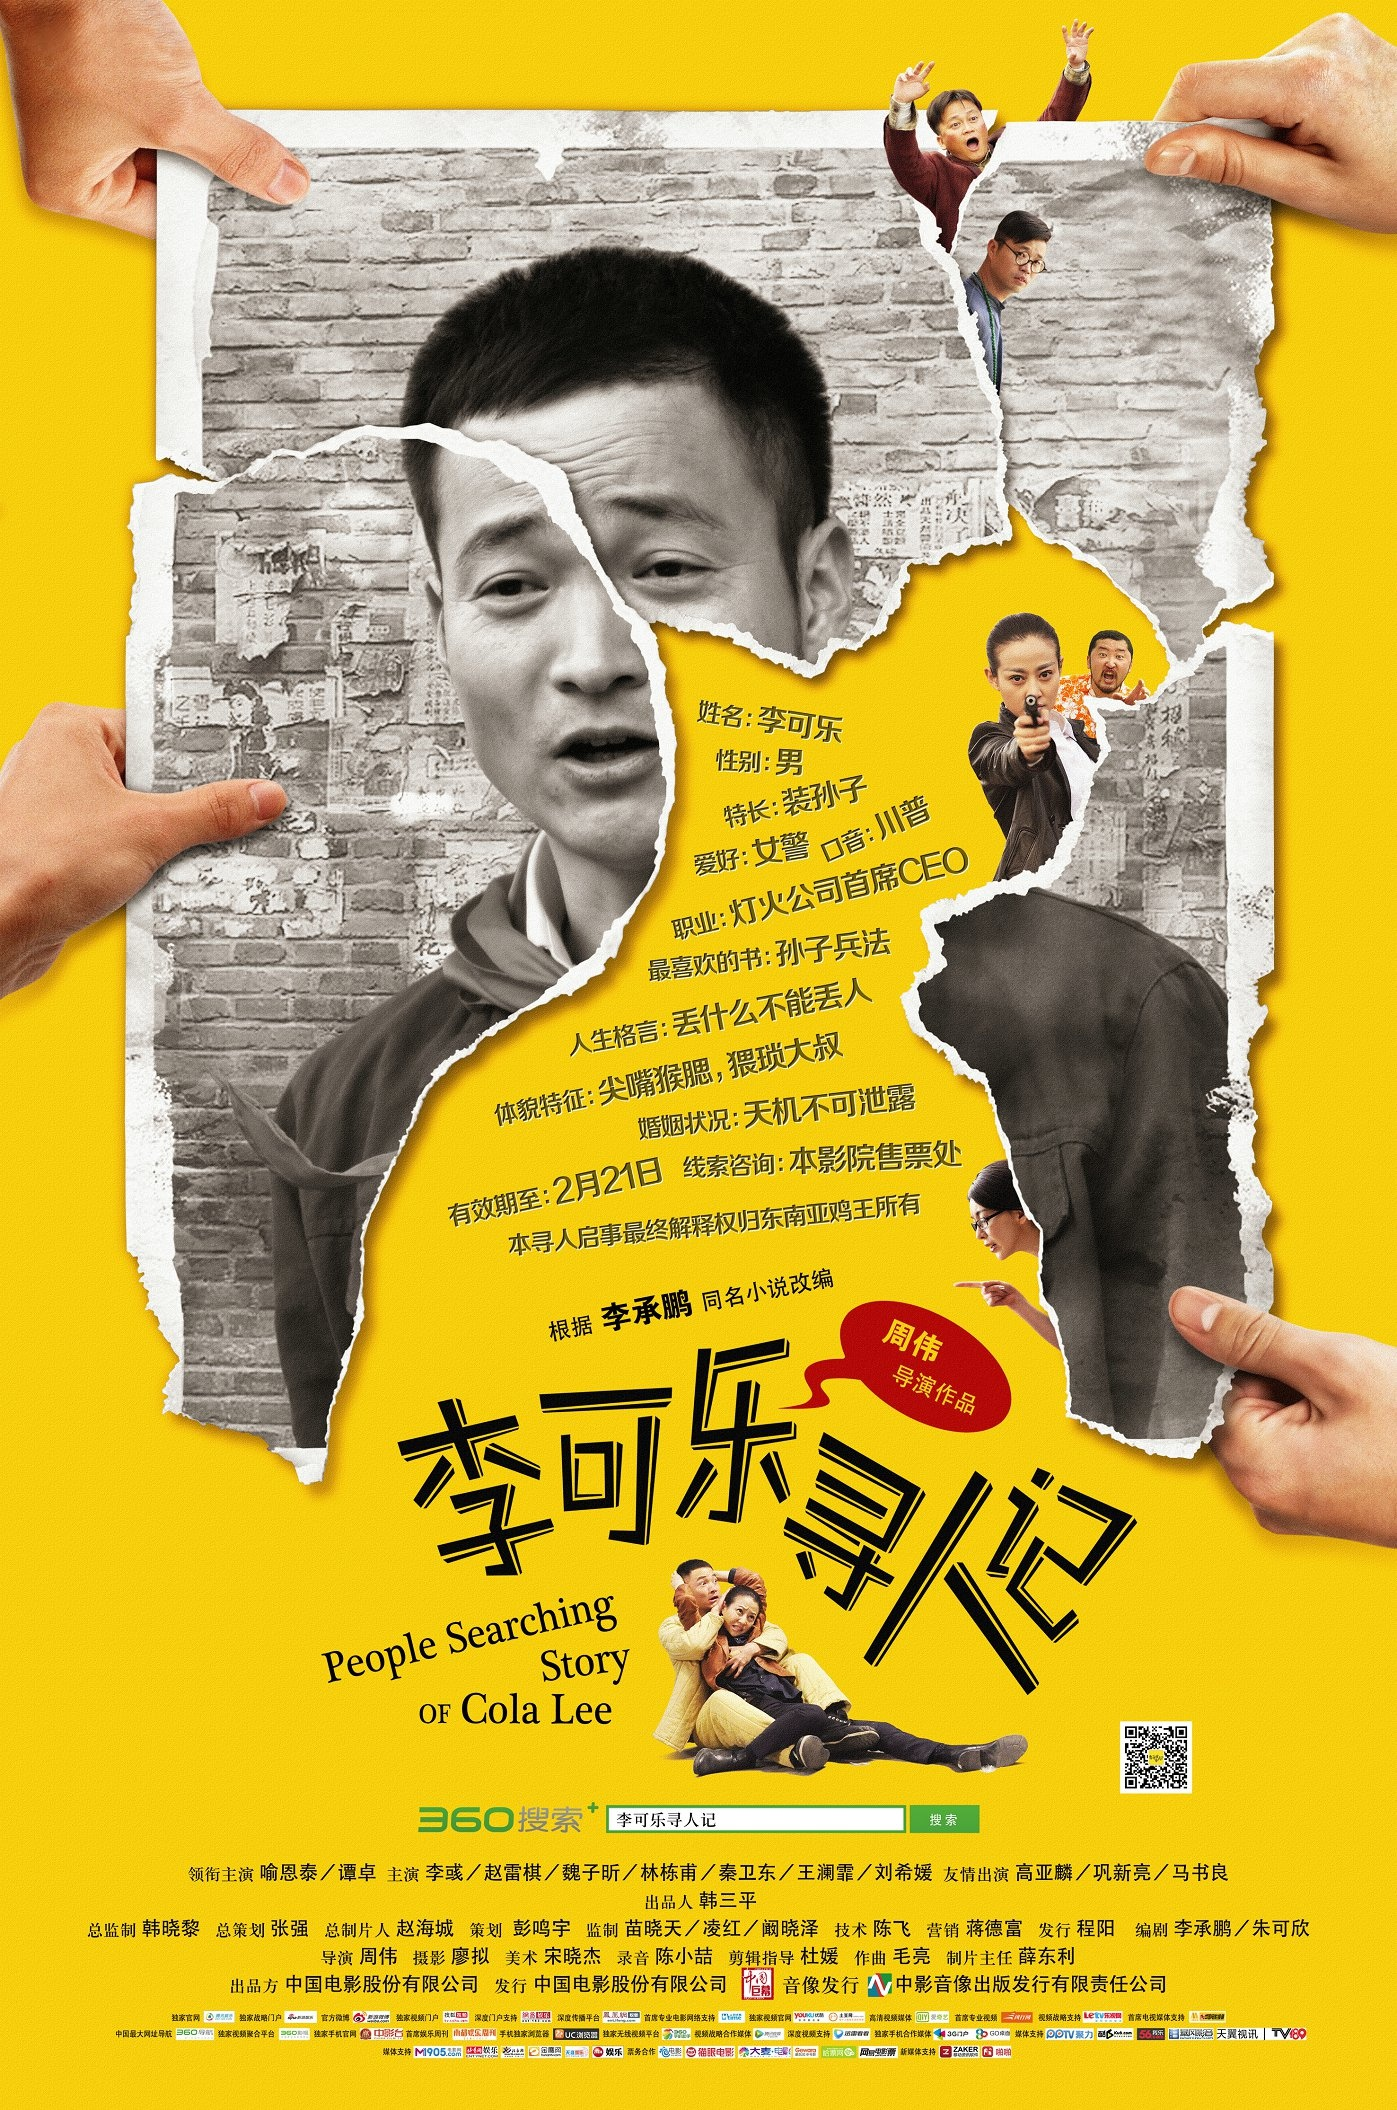 2014年 李可乐寻人记 People Searching Story of Cola Lee的图片